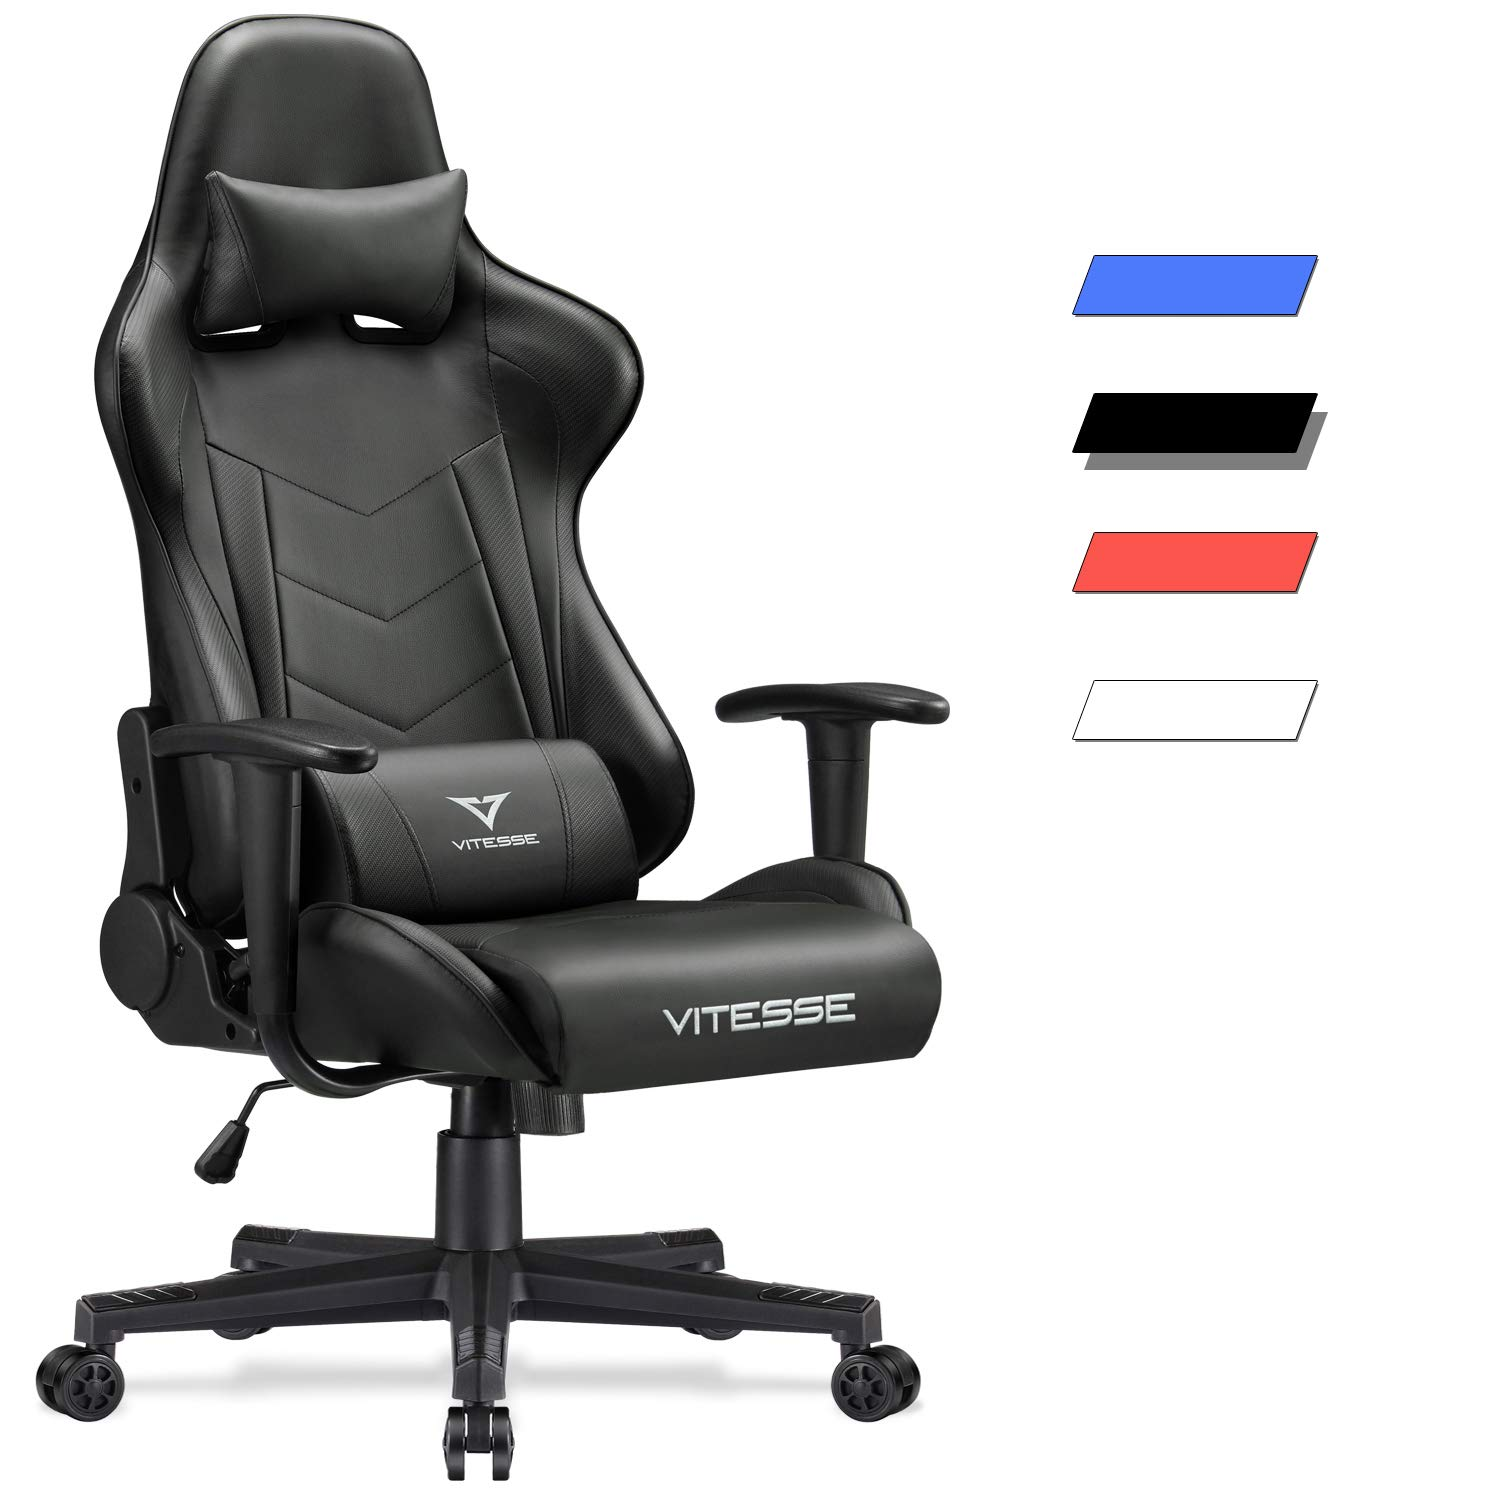 Chairsillas Computer Swivel Back Comfortable Gaming Style Vitesse Ergonomic Desk GamingVideo Executive High Racing OkZPXiTwu